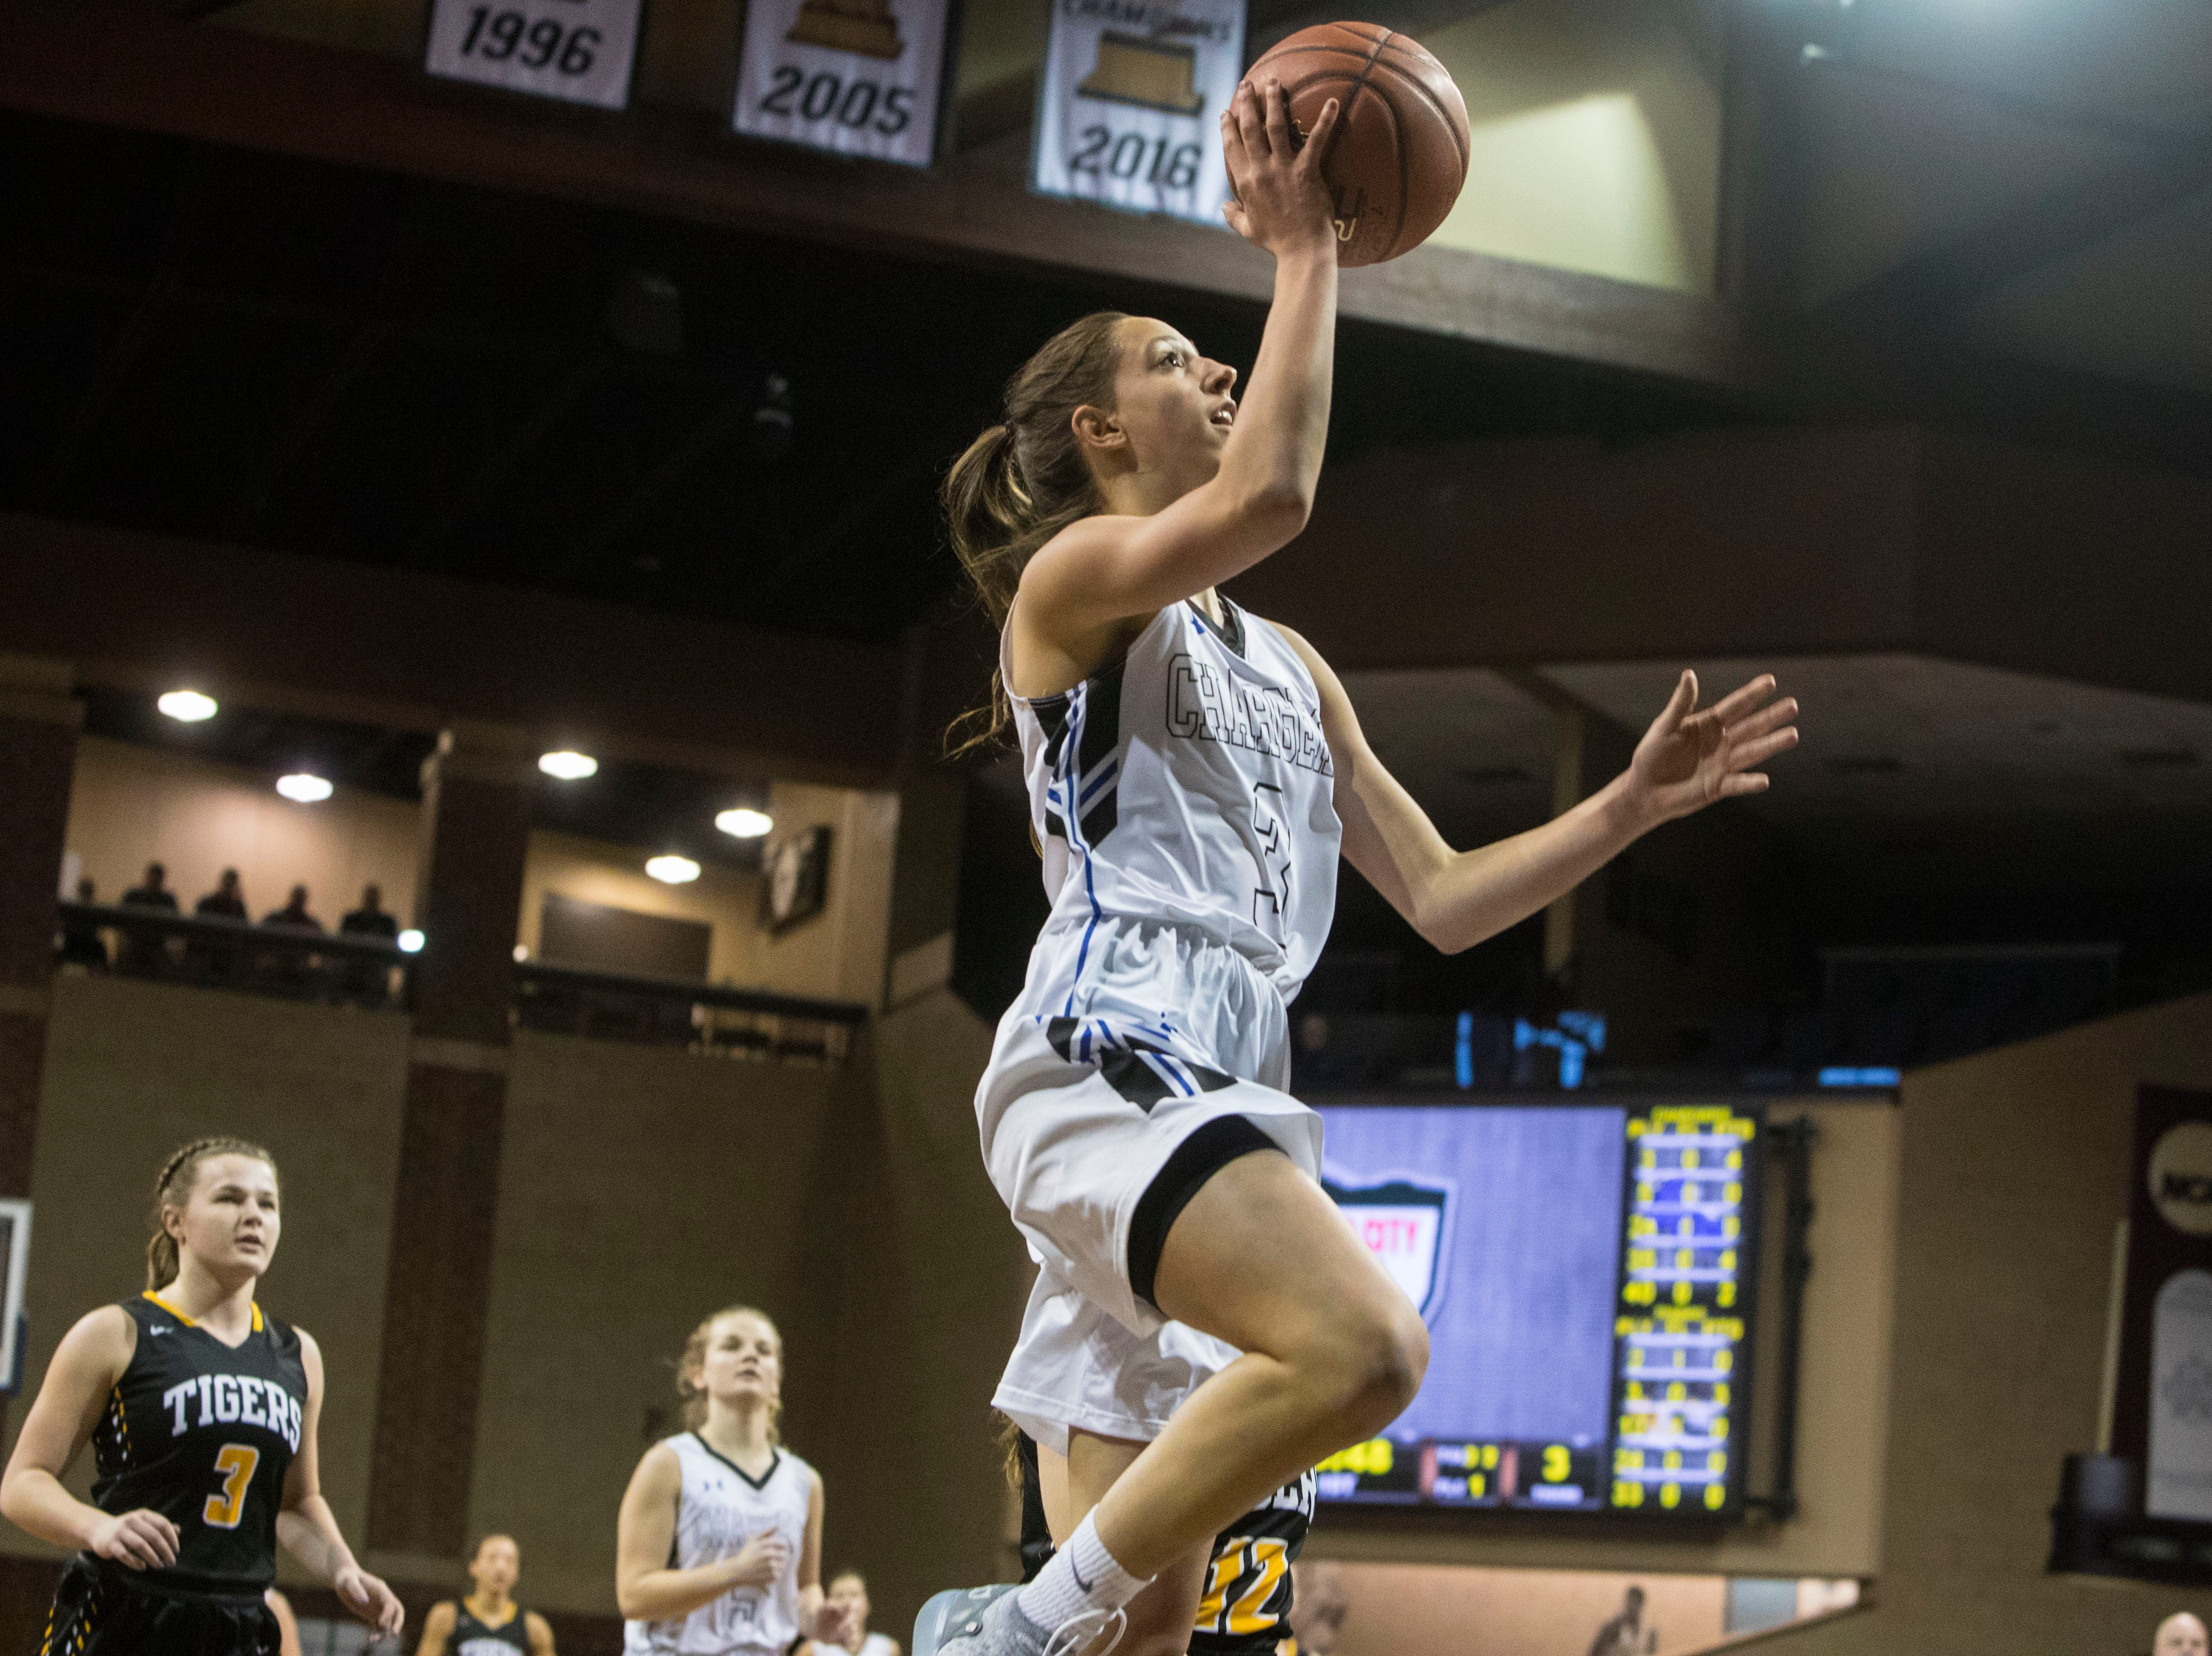 Sioux Falls Christian's Lexi Unruh (3) shoots the ball during a game against Hutchinson at the Hoop City Classic at the Sanford Pentagon in Sioux Falls, S.D., Saturday, Dec. 29, 2018.